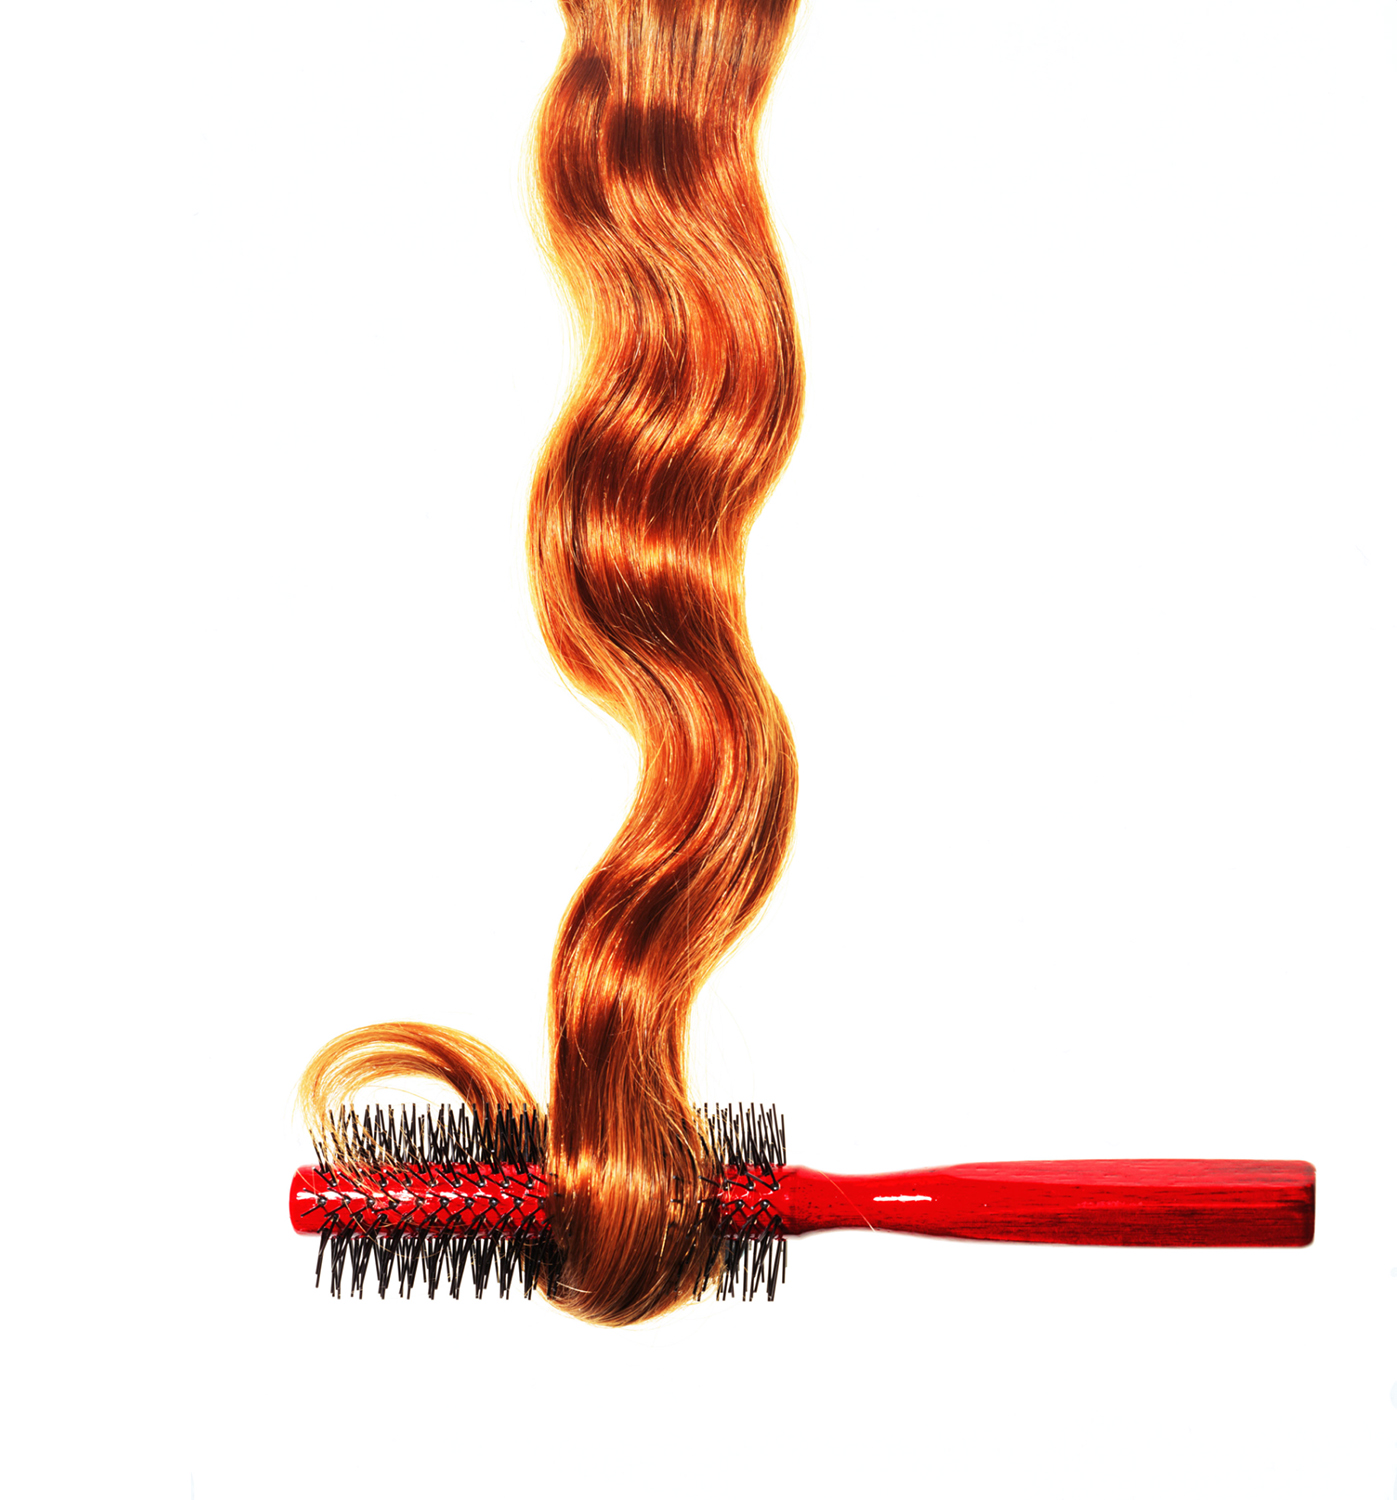 Long red hair and brush